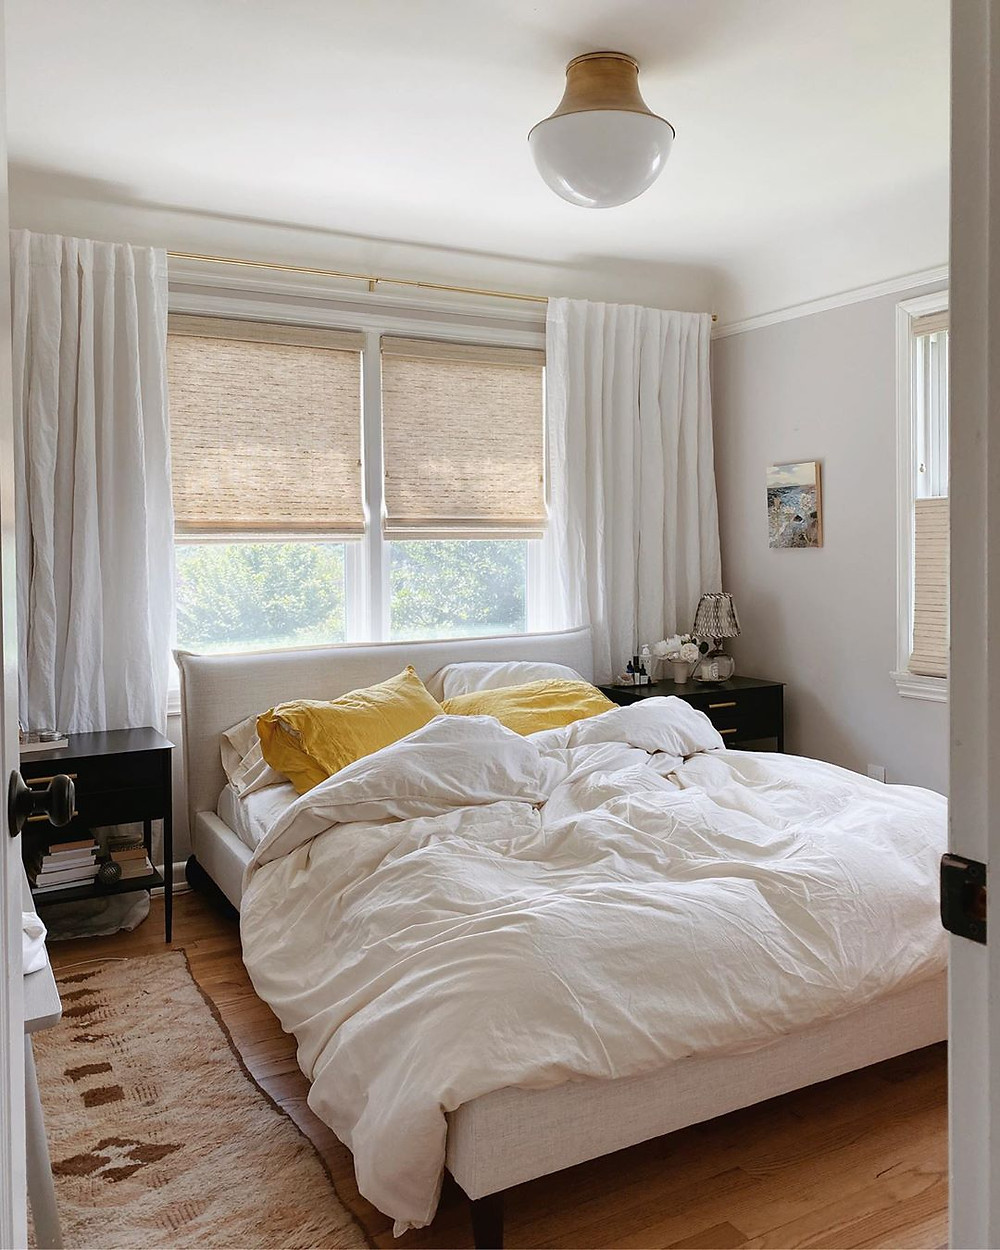 cozy bedroom with yellow pillows and white bed sheets